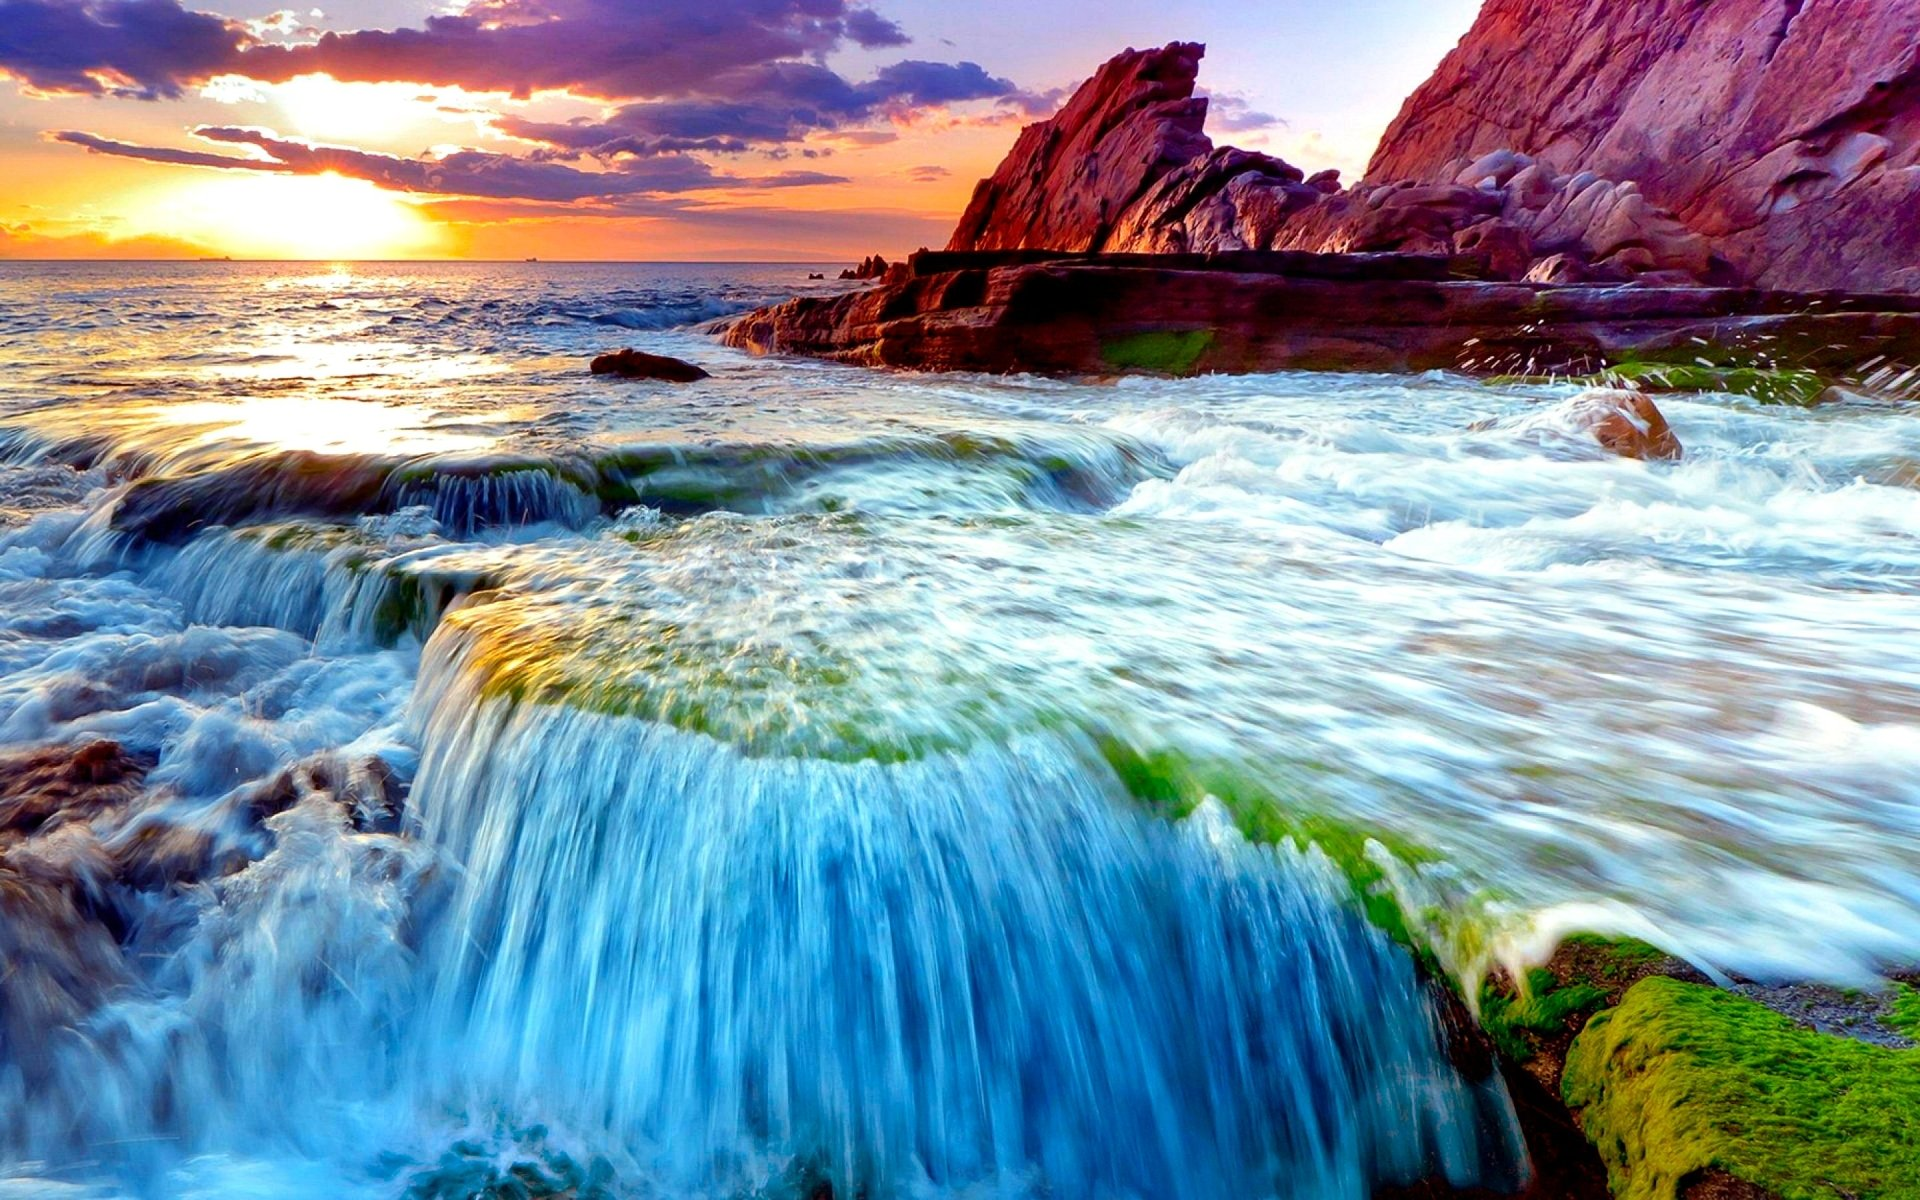 Earth - Ocean  Blue Sunset Cloud Coast Waterfall Nature Wallpaper